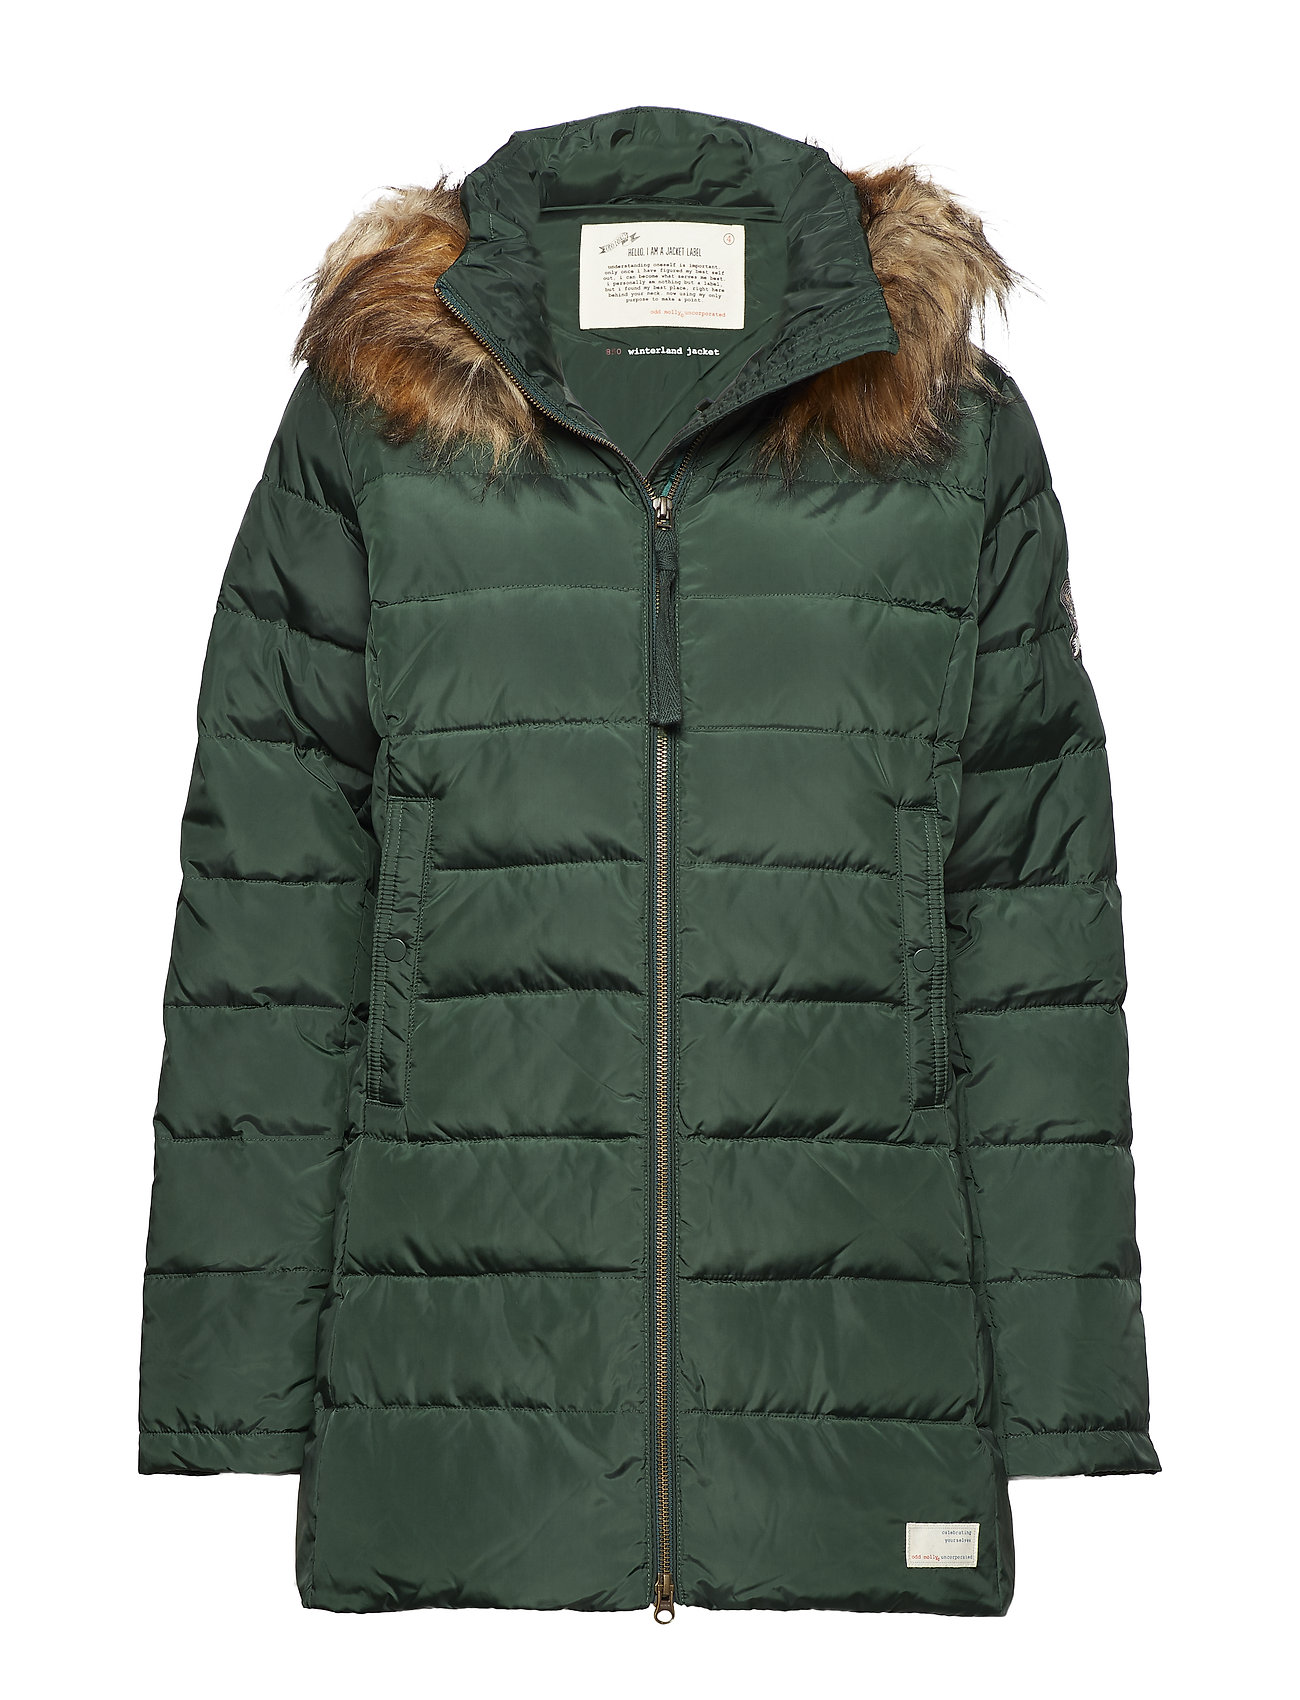 ODD MOLLY winterland jacket - EMERALD GREEN